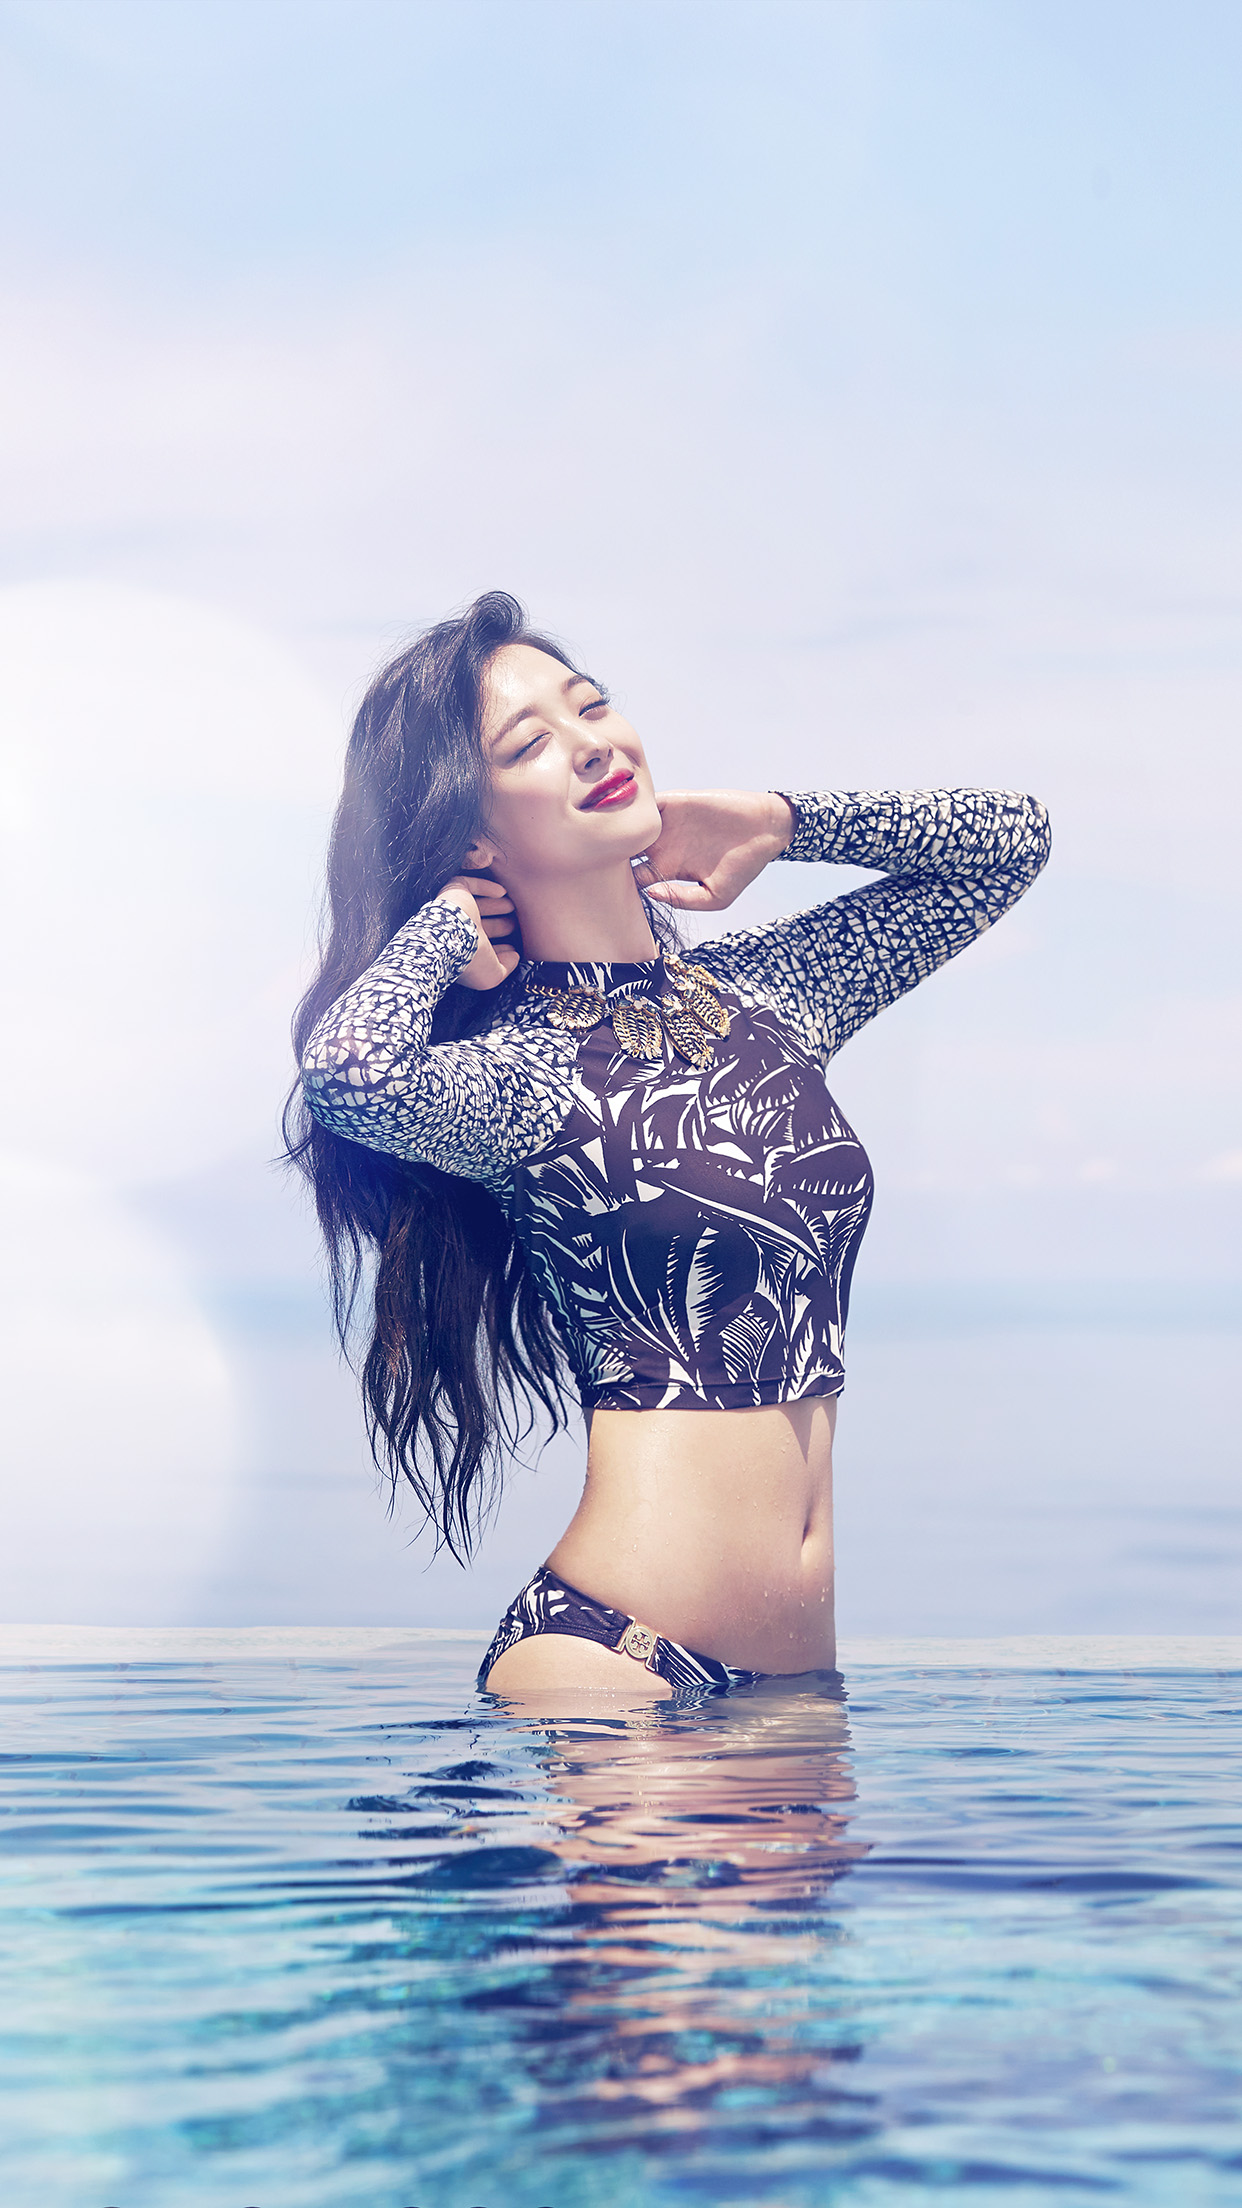 Cute Korean Girl Desktop Wallpaper Hf69 Sulli Bikini Pool Kpop Sexy Idol Beach Flare Papers Co